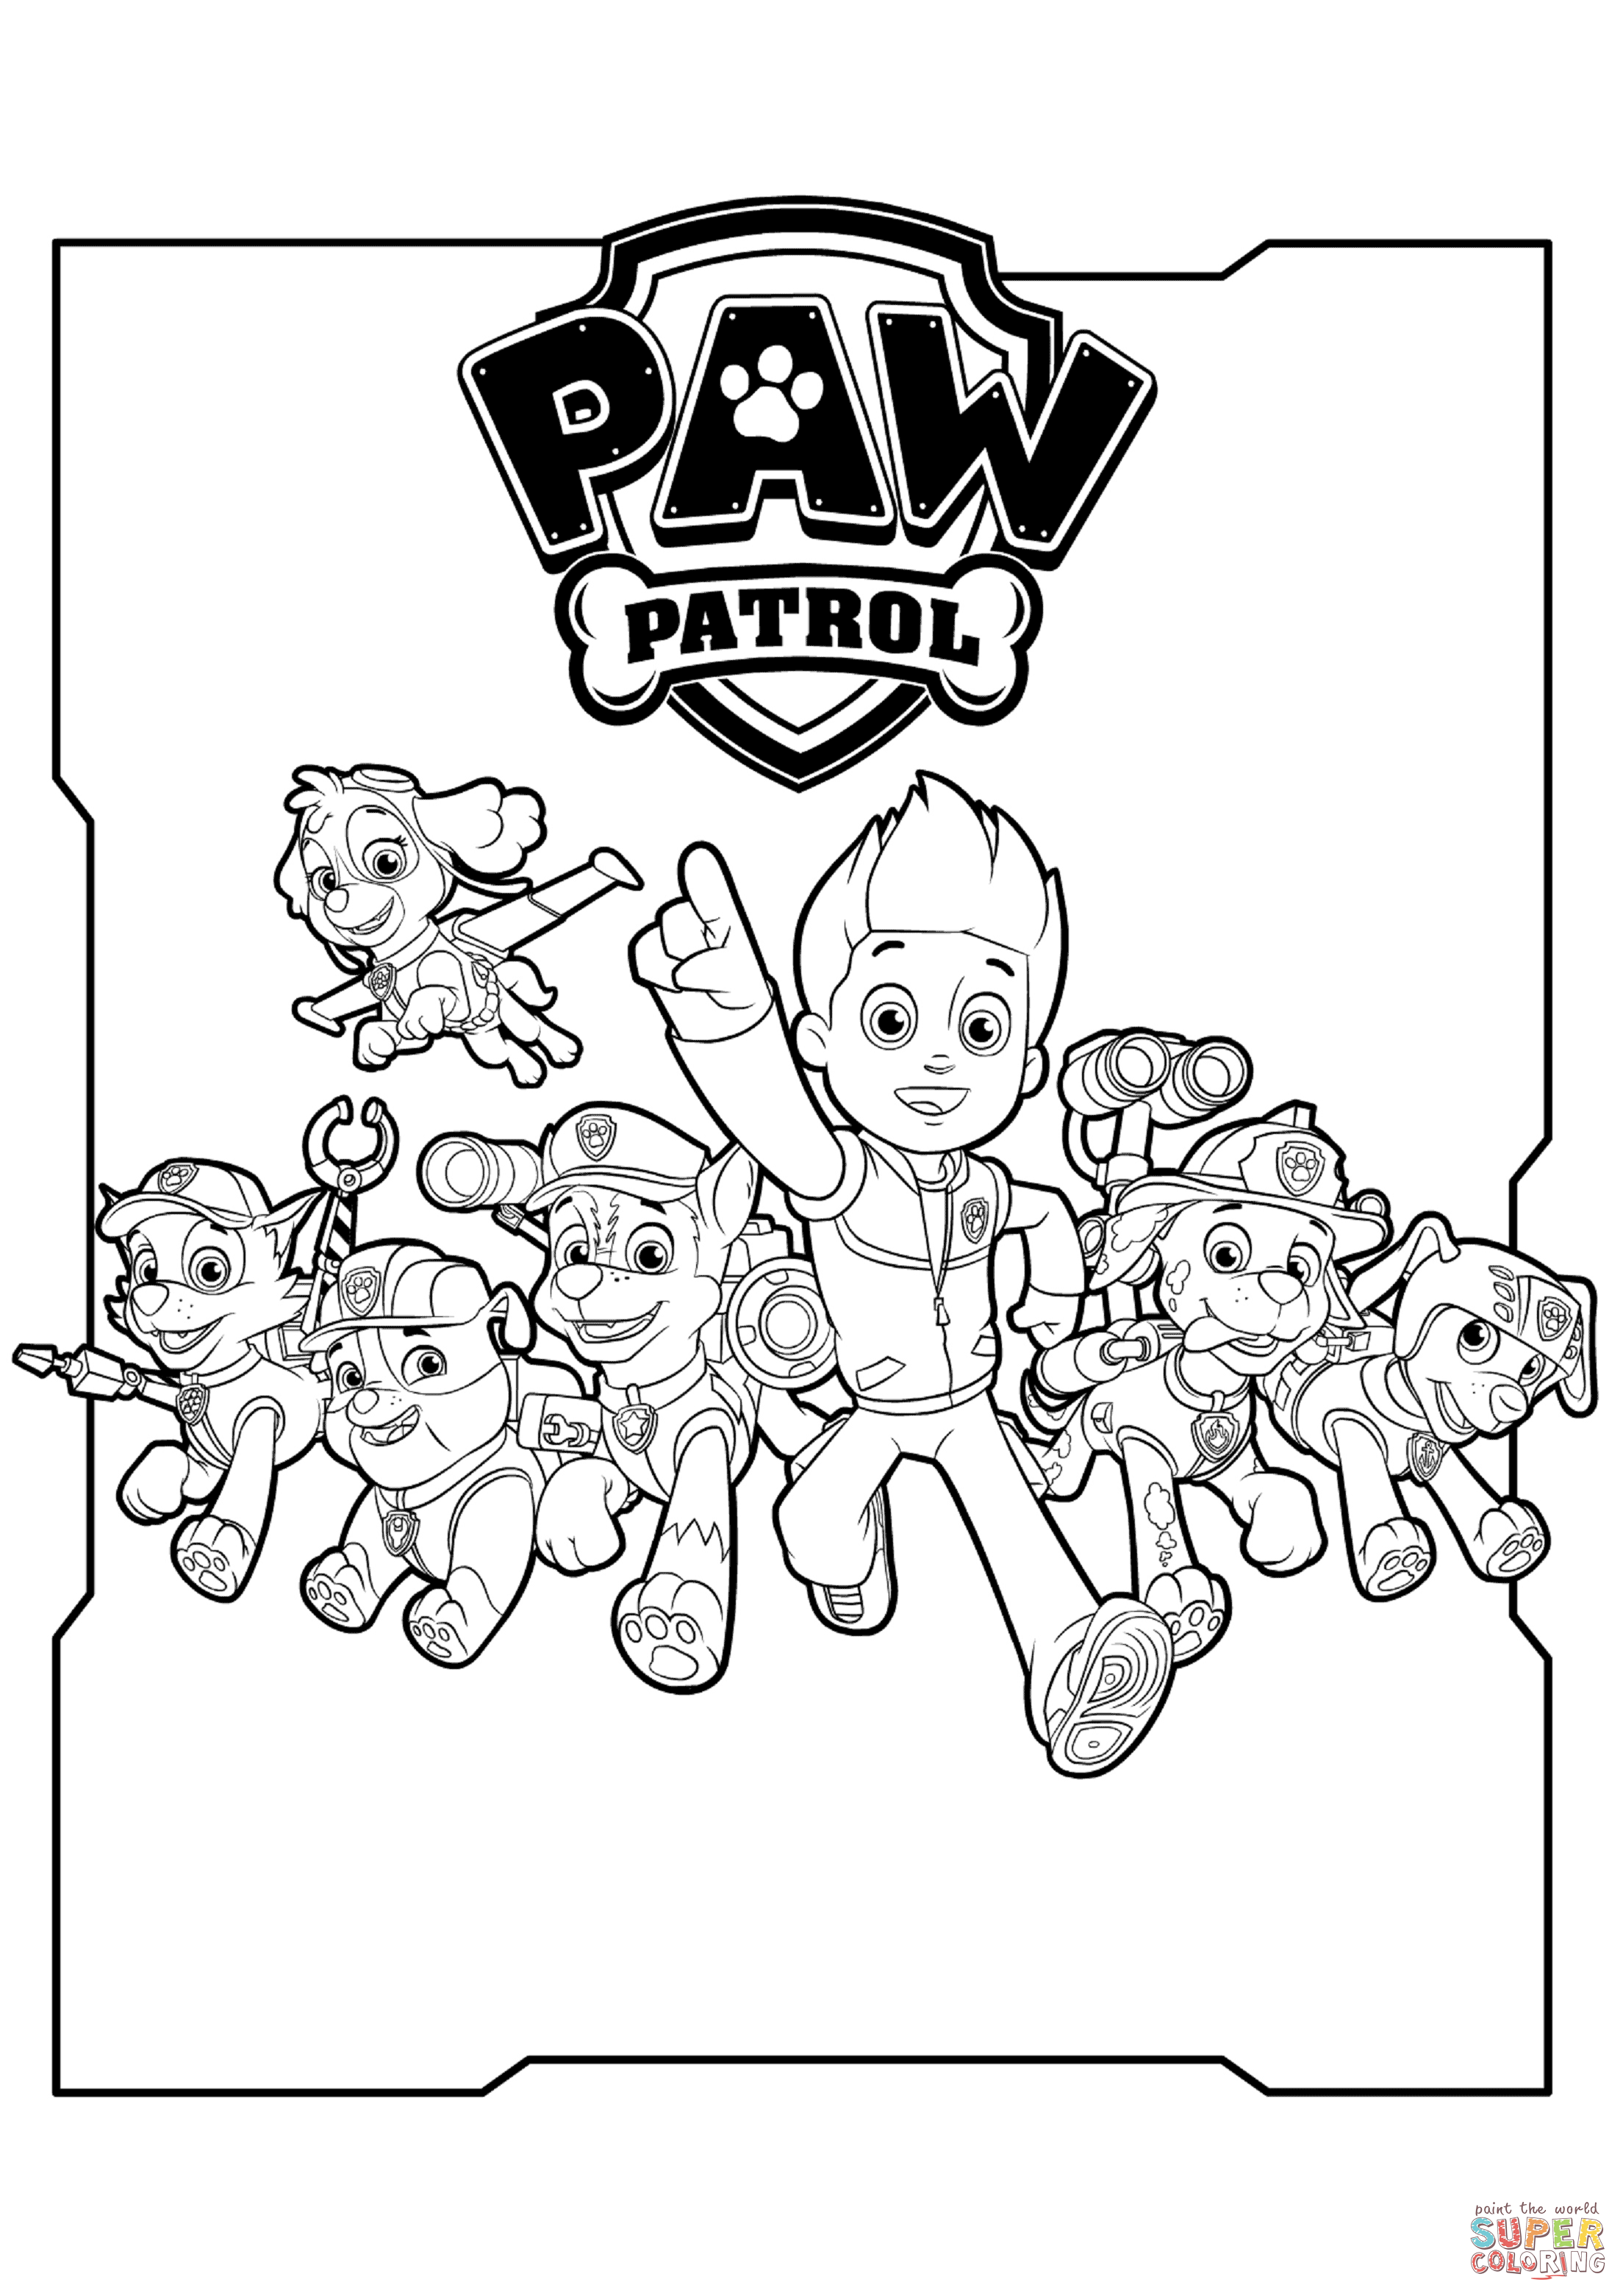 paw patrol coloring characters all paw patrol characters coloring page free printable characters patrol paw coloring